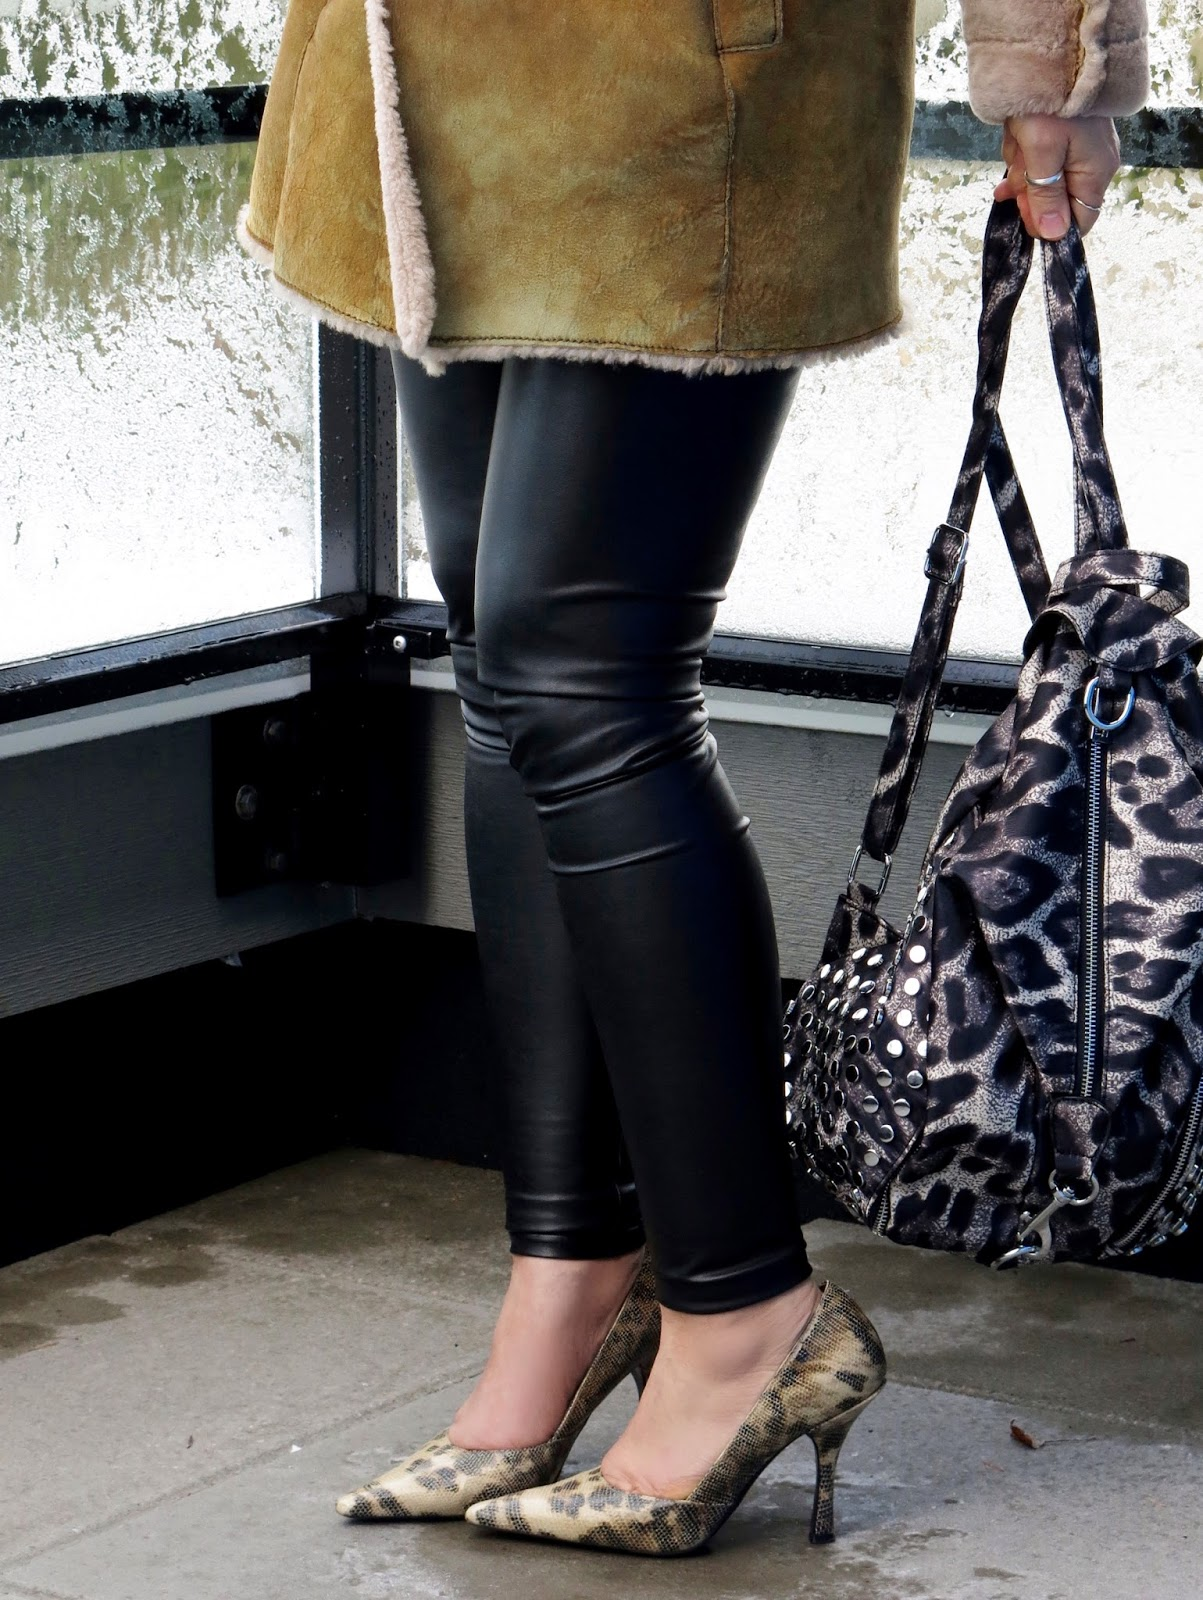 sheepskin coat, faux-leather leggings, reptile pumps, and leopard-print backpack